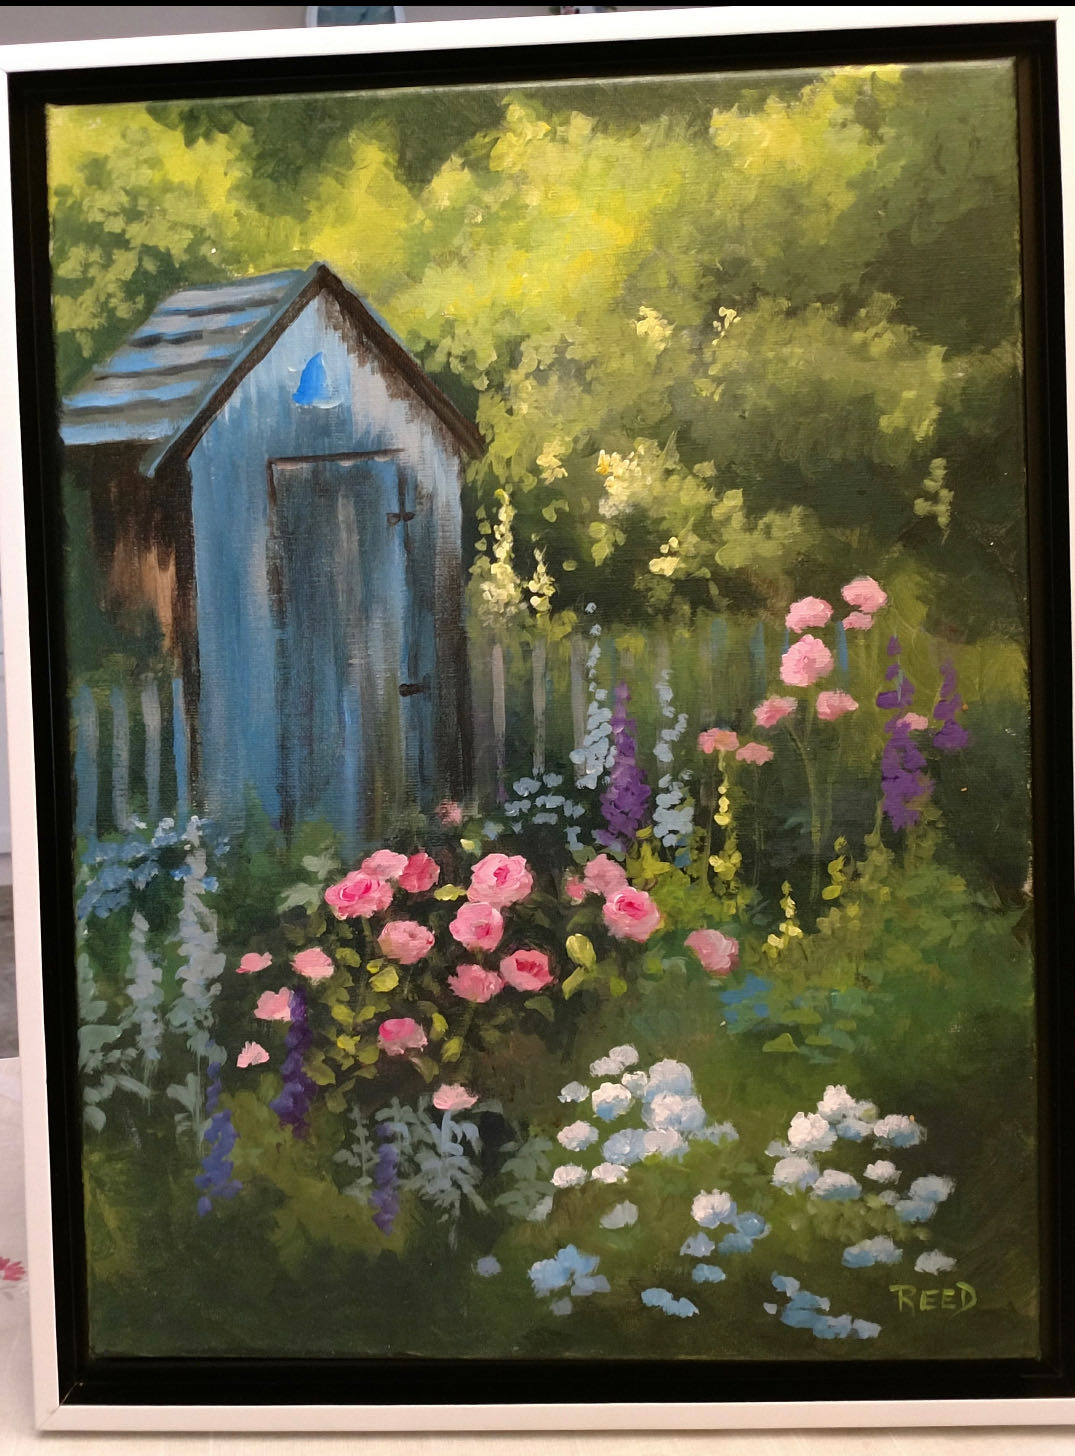 Sip & Paint- shed surrounded by flowers